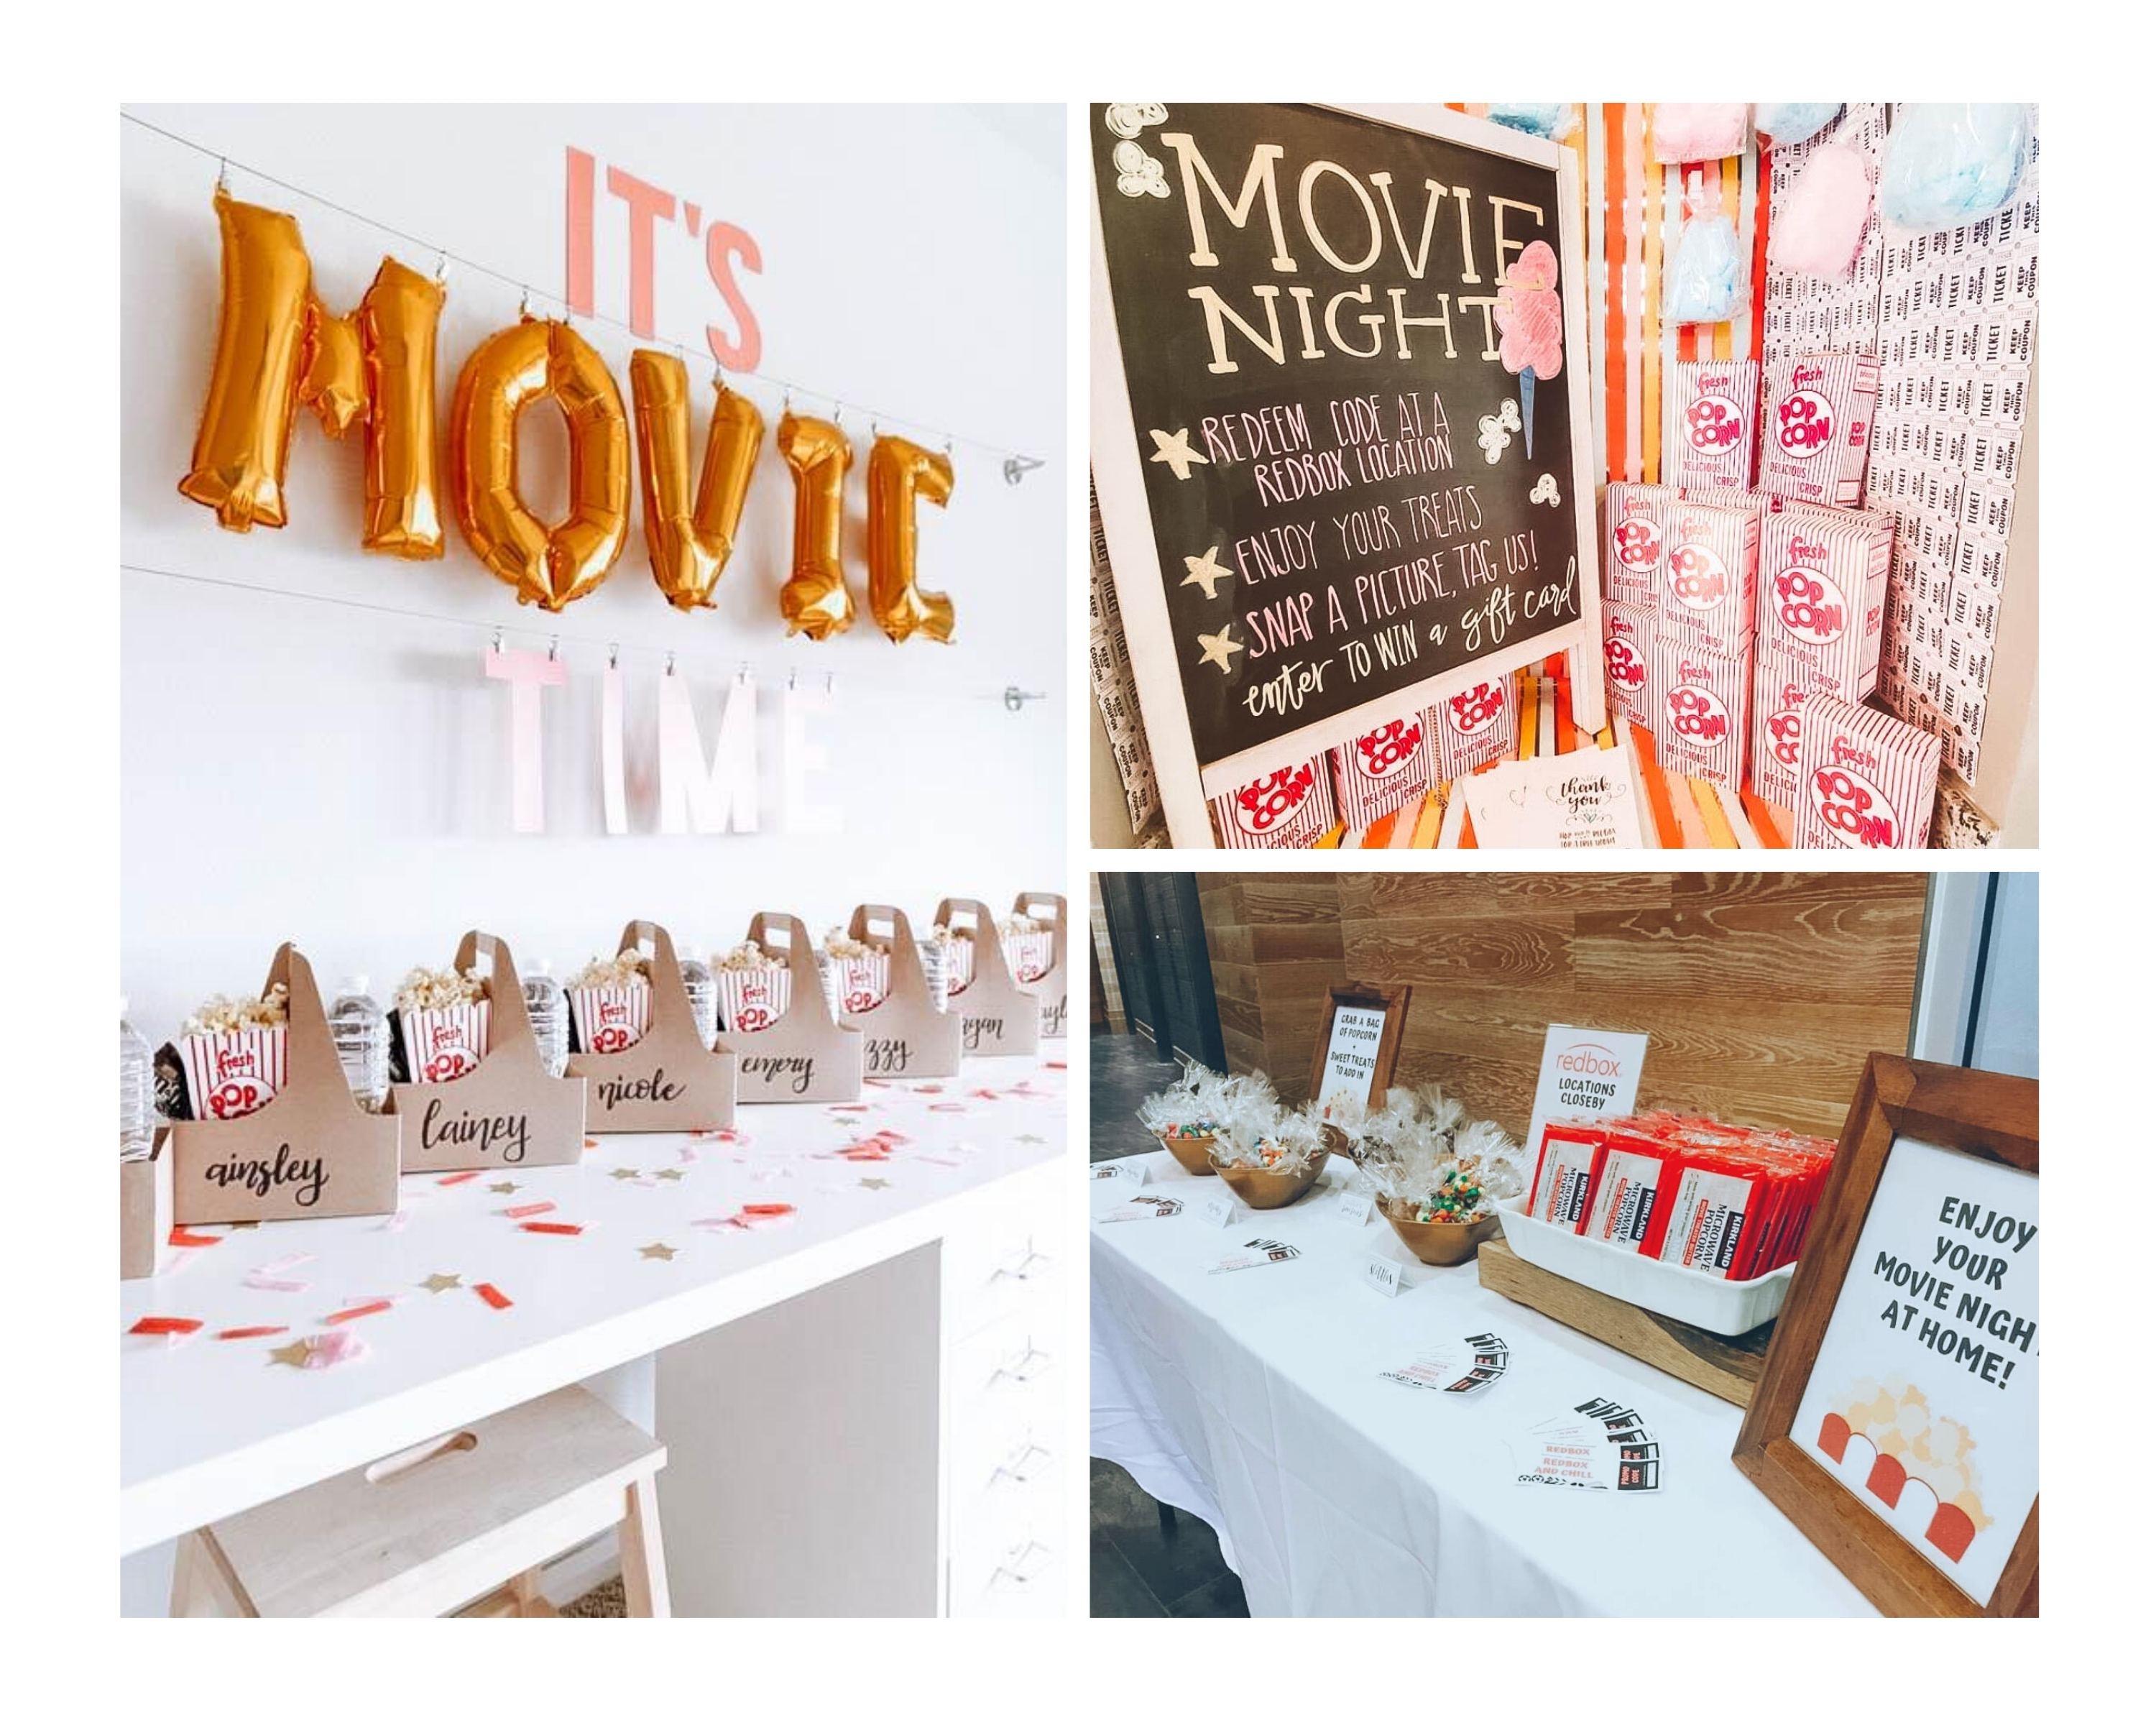 ADAPTABLE EVENTS | MOVIE NIGHT IN THE YEAR OF COVID - image collage 1